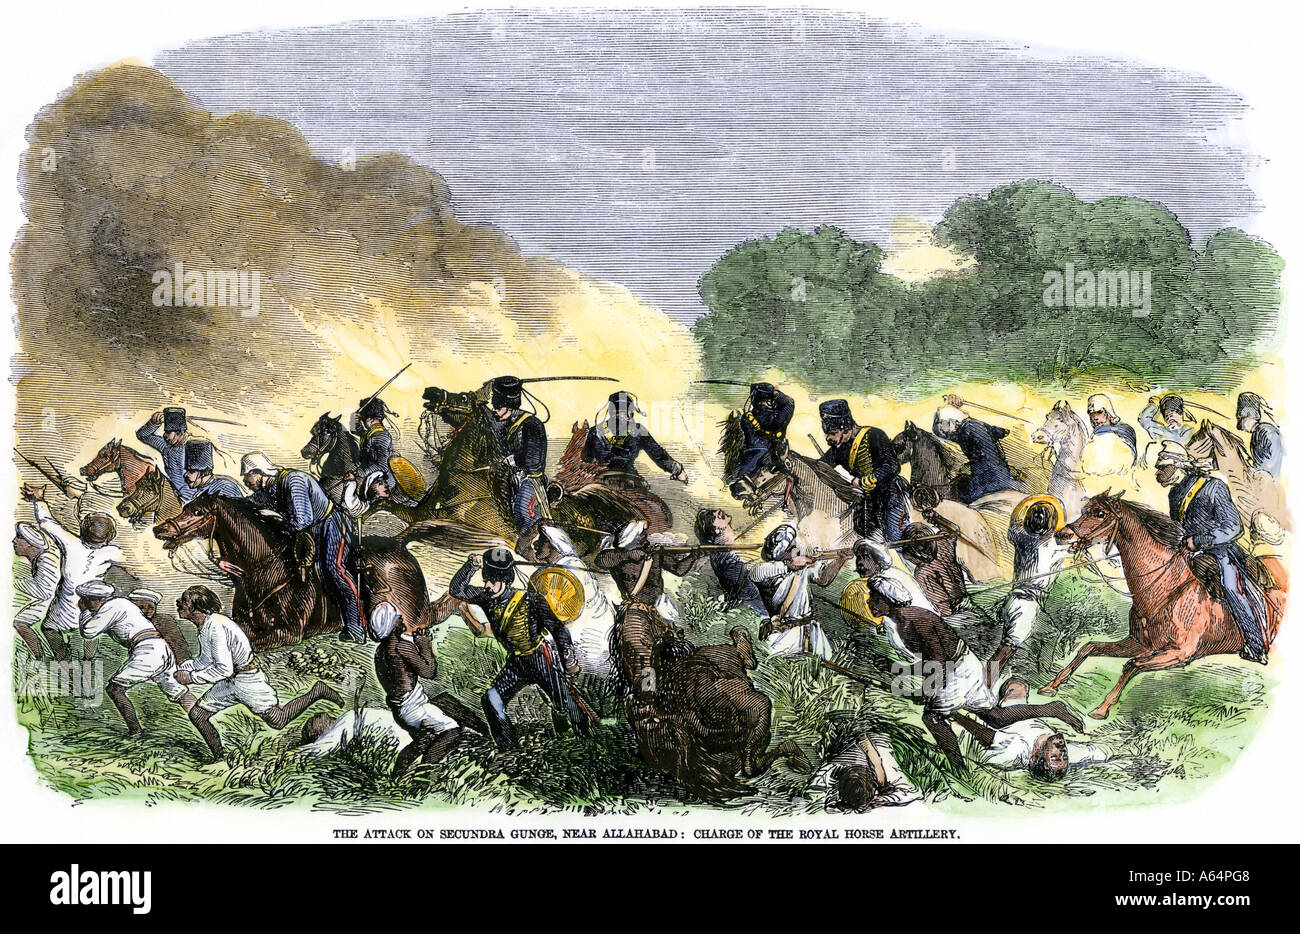 British Royal Horse Artillery charge against unmounted natives near Allahbad India  during the Sepoy Revolt 1857. Hand-colored woodcut - Stock Image